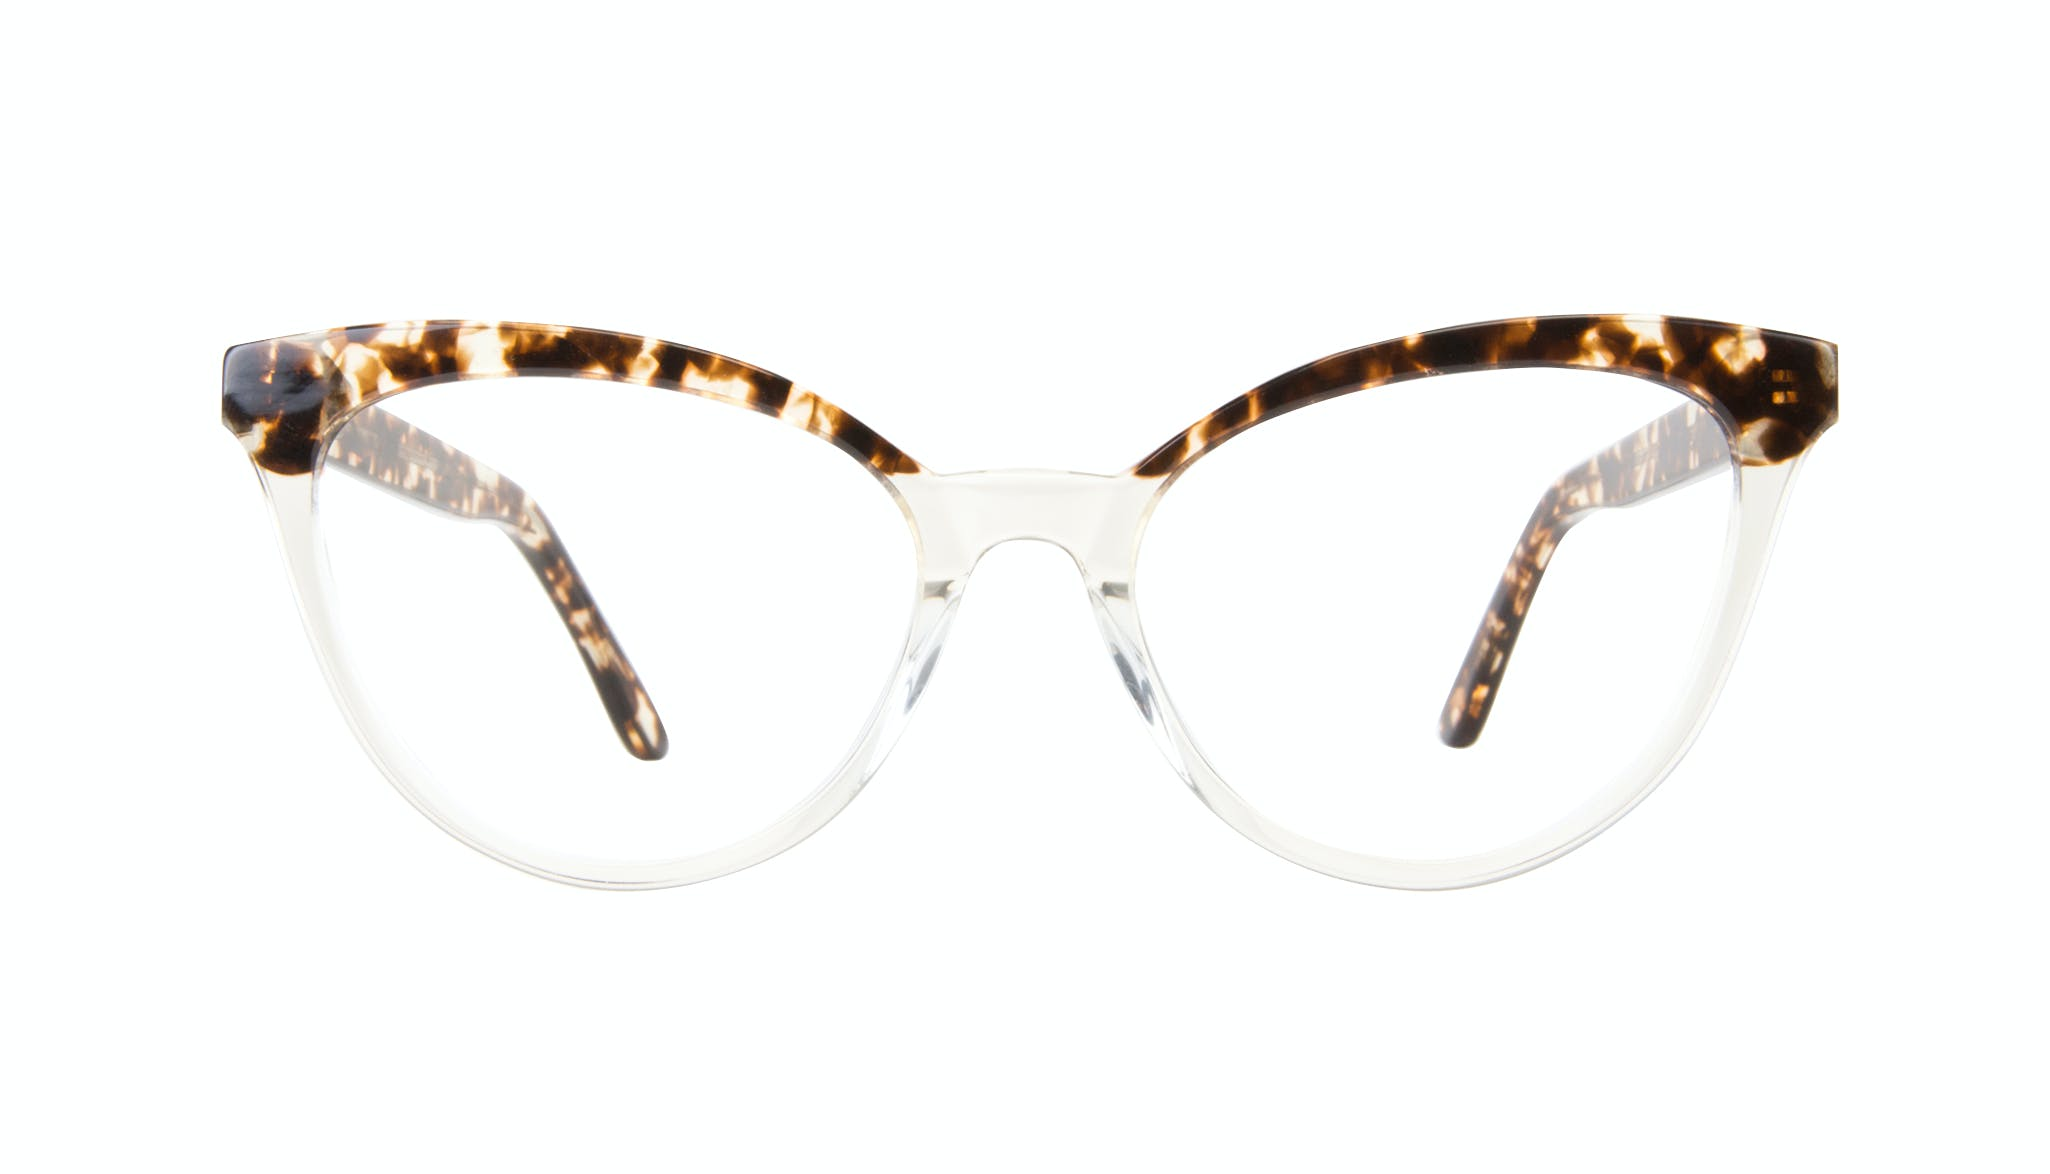 Affordable Fashion Glasses Cat Eye Daring Cateye Eyeglasses Women Reverie Blond Tortoise